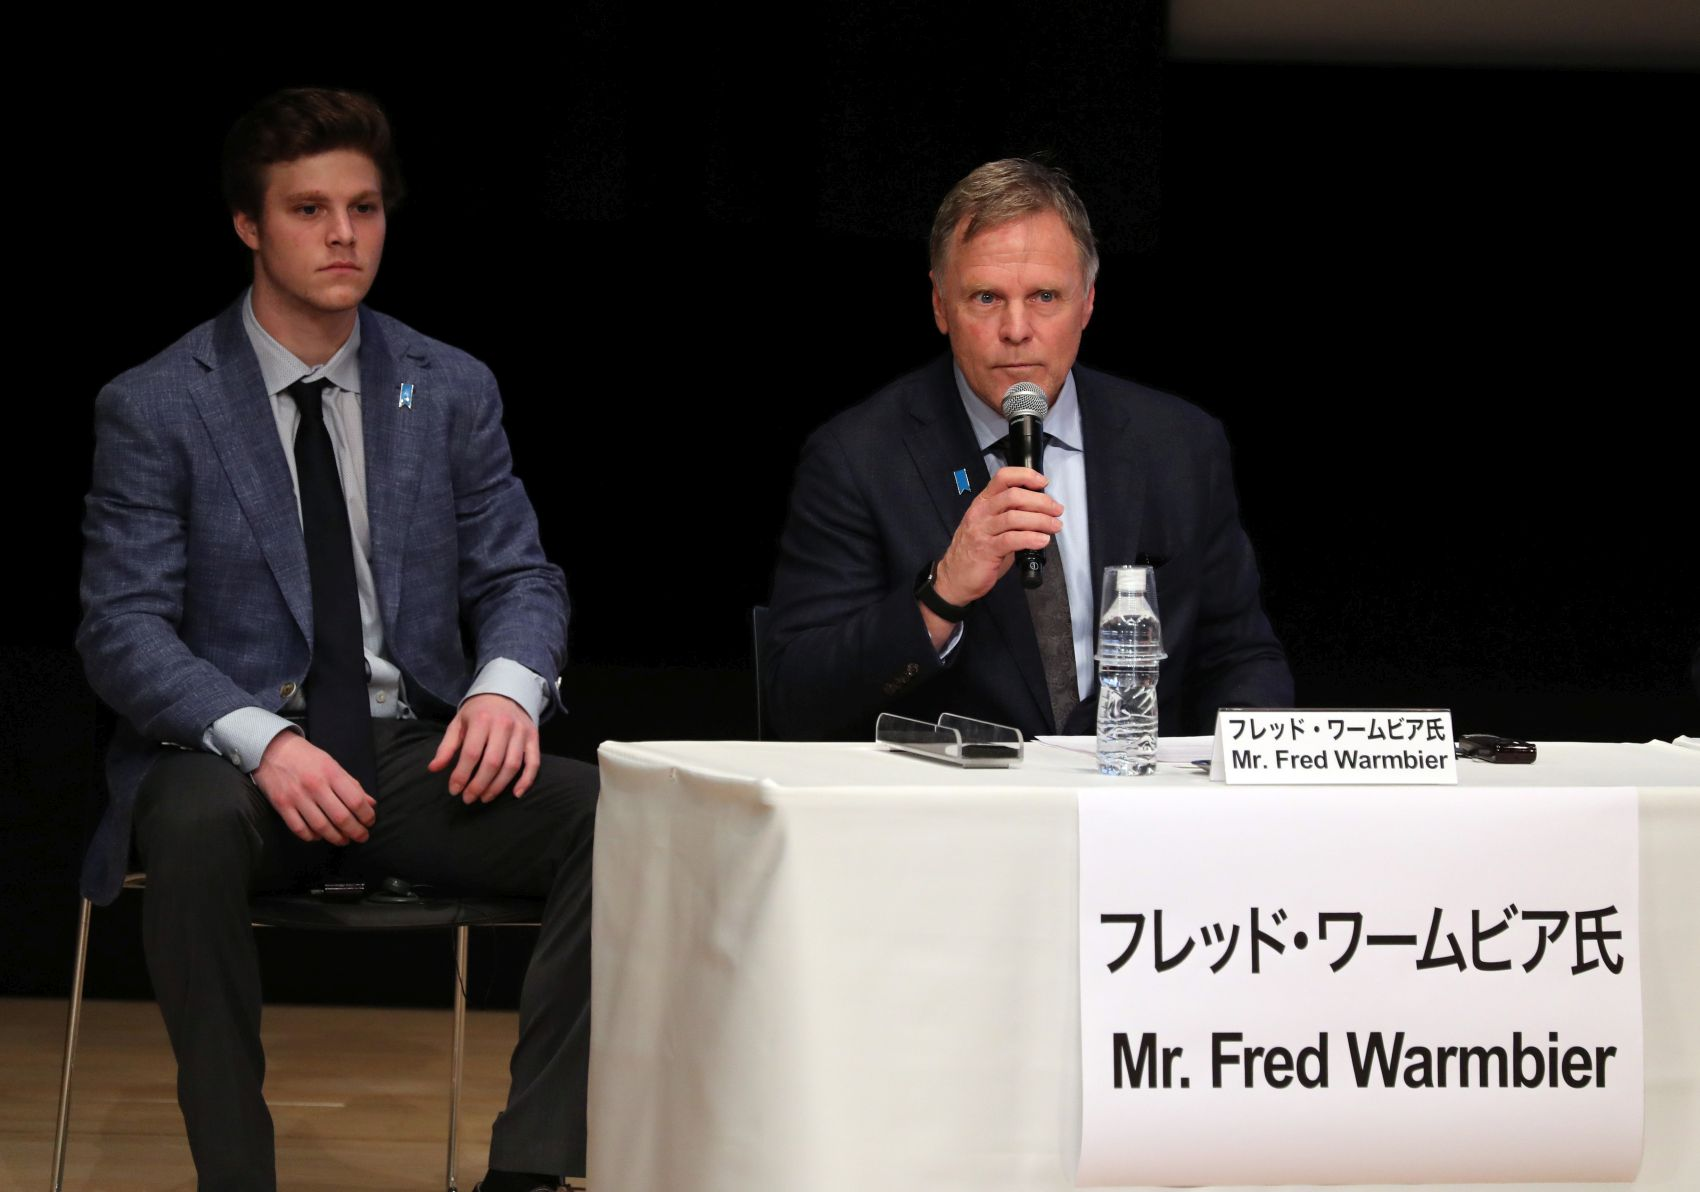 Tokyo Symposium Pushes for Resolution of North Korean Abductions, Human Rights Violations